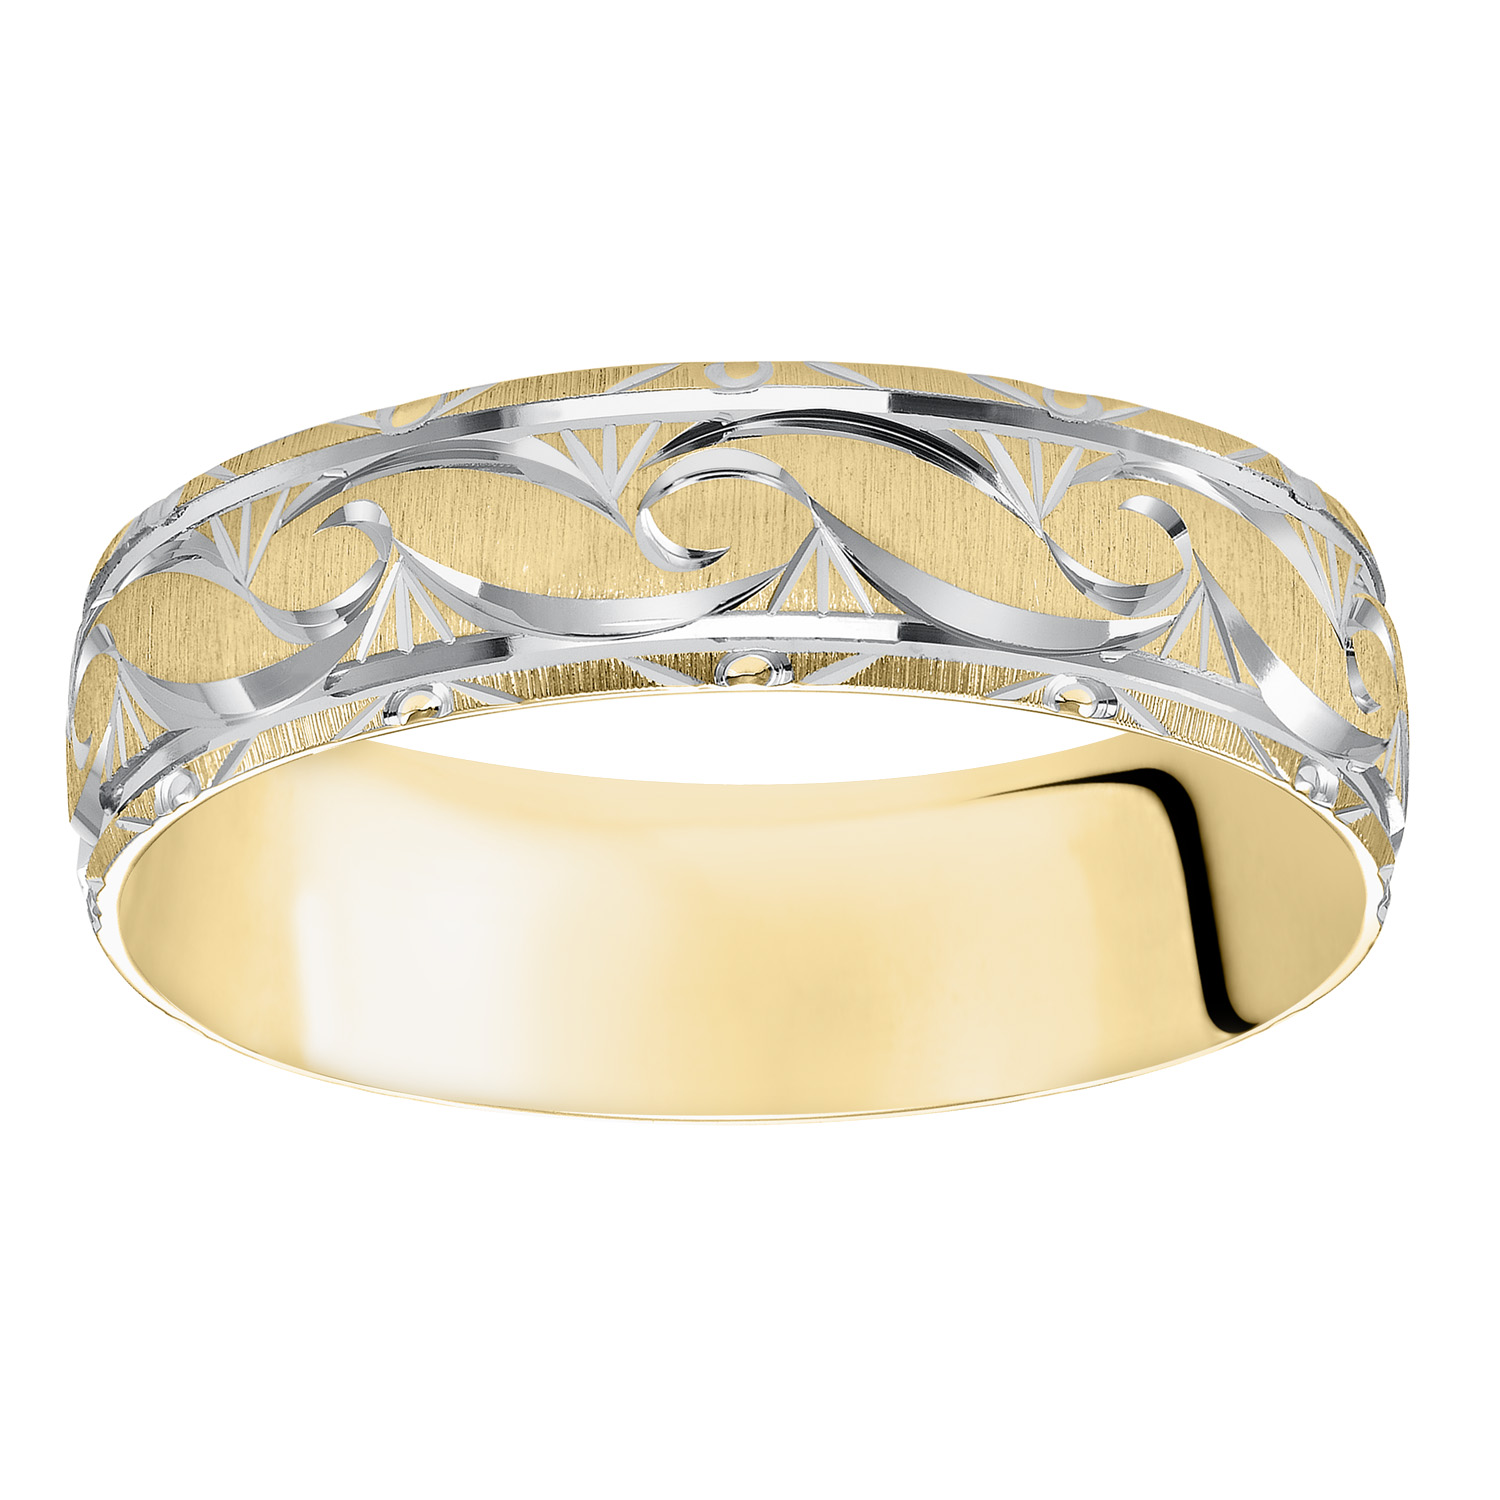 Ornate Satin Finish & Beveled Edge Comfort Fit Wedding Band in 14k Yellow Gold & Rhodium - flat up view